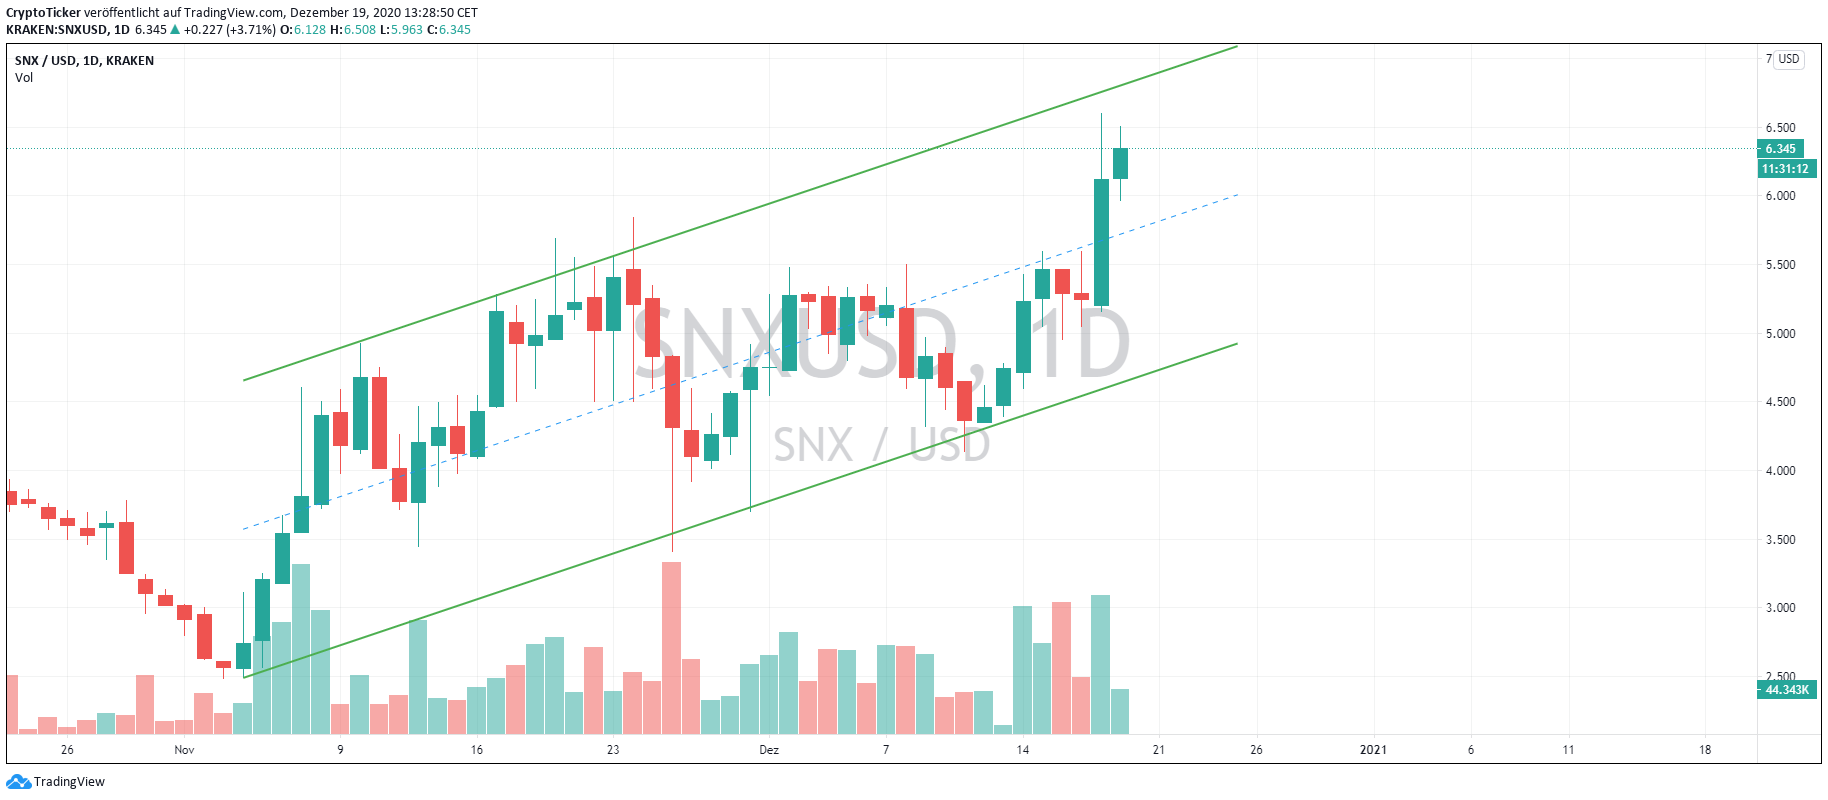 SNX/USD 1-Day chart - Uptrend picking up after an extended consolidation